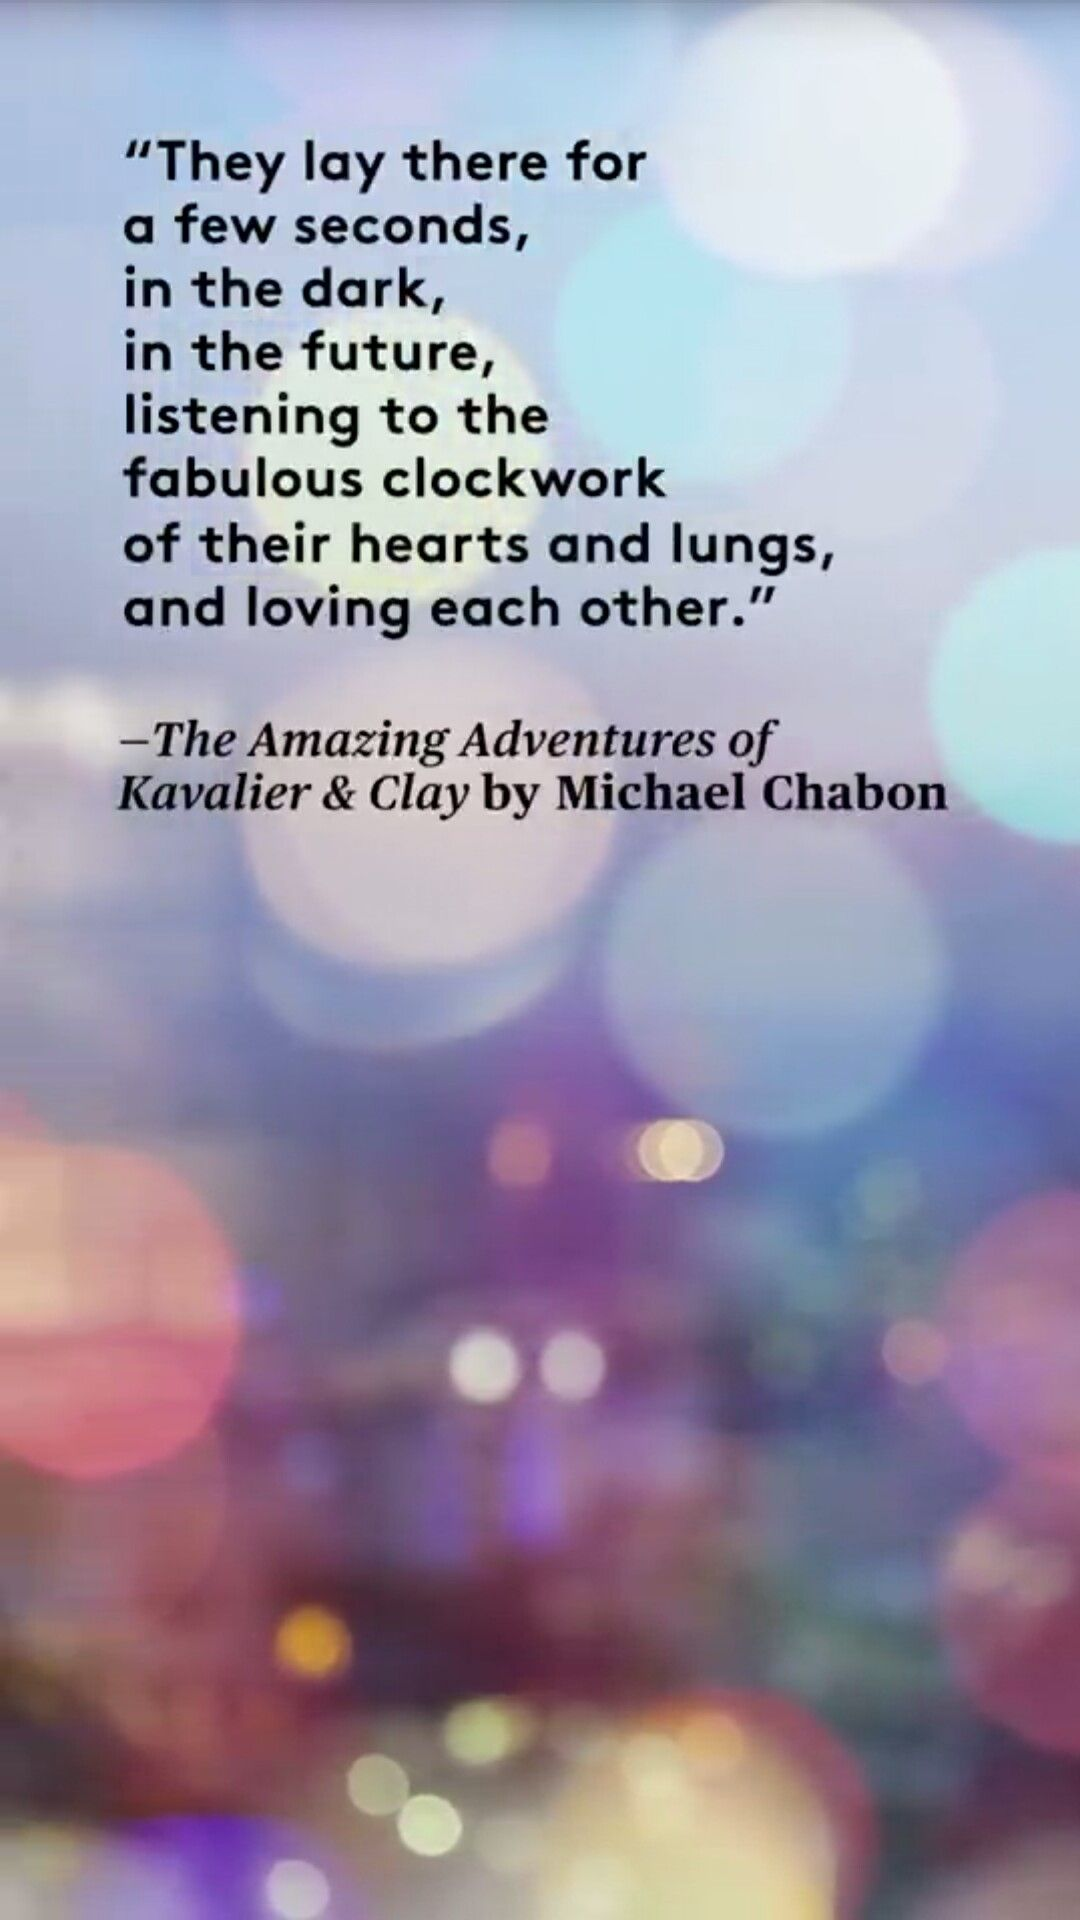 The Amazing Adventures of Cavalier & Clay by Michael Chabon quote